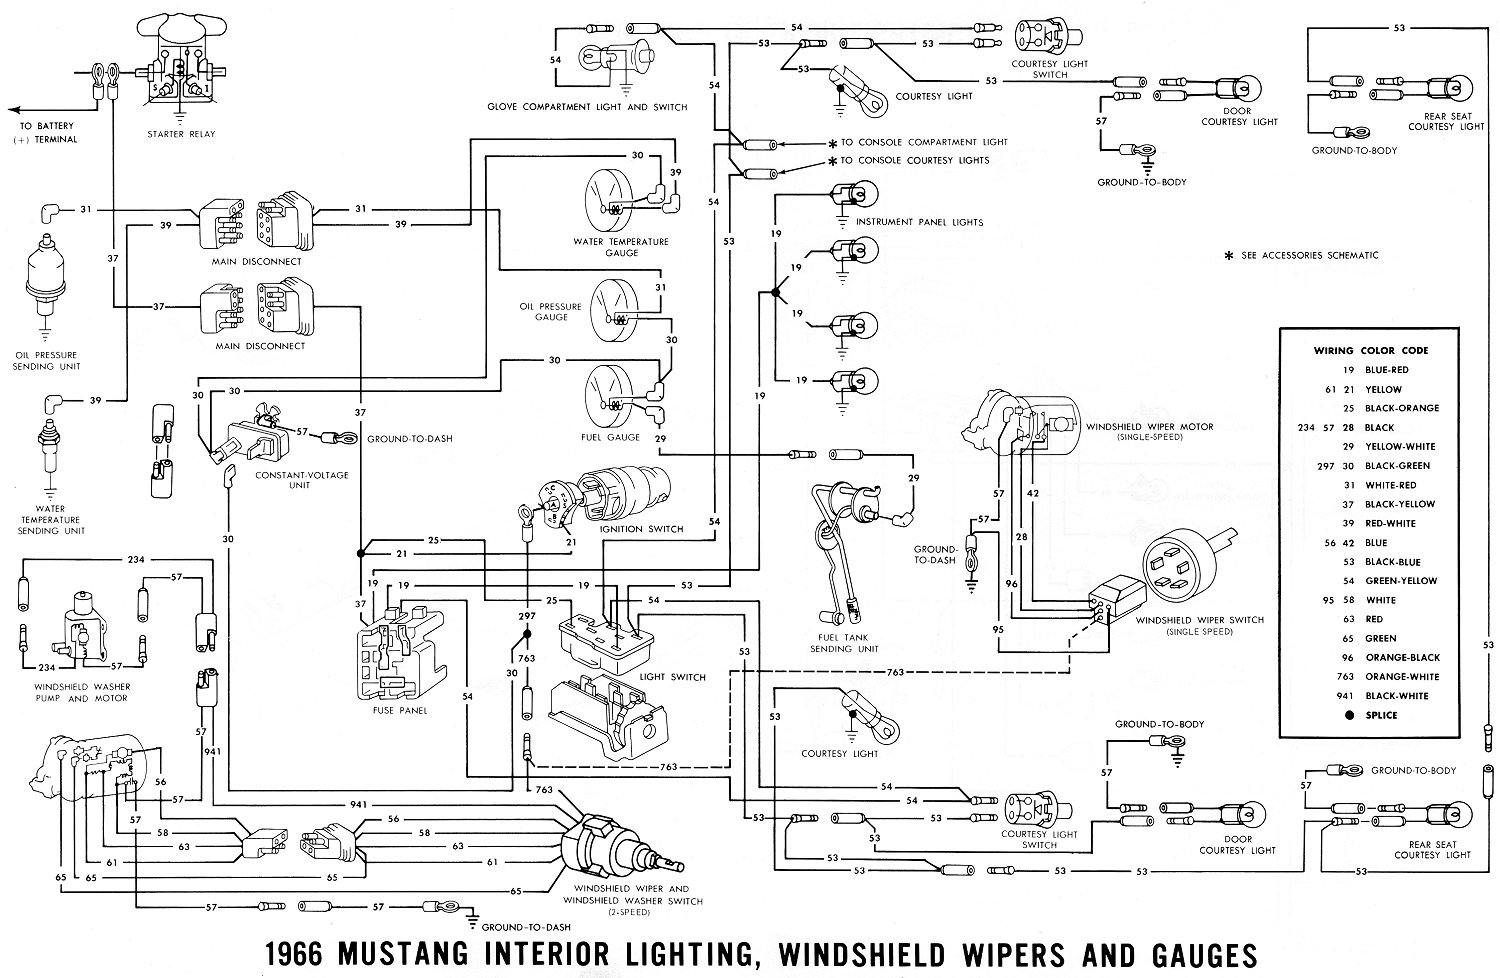 66inter1 1966 mustang fuse box diagram 1968 mustang fuse box location 1970 mustang fuse box diagram at mifinder.co